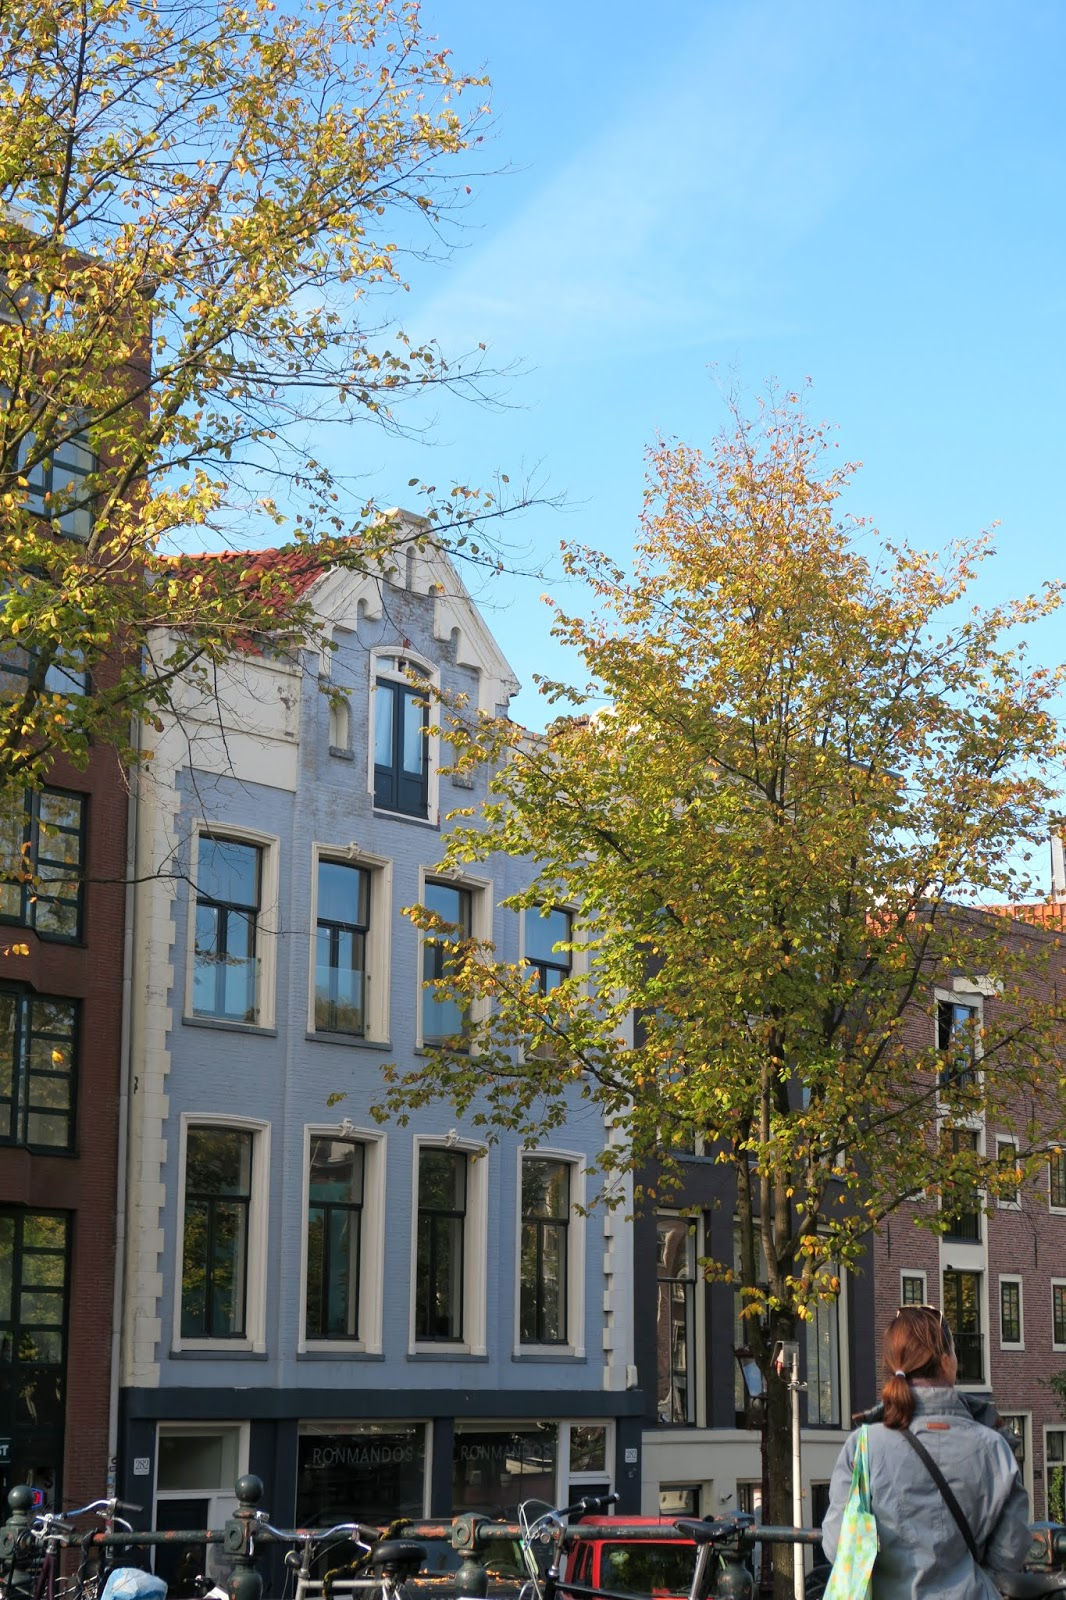 Amsterdam blue canal house and autumn tree